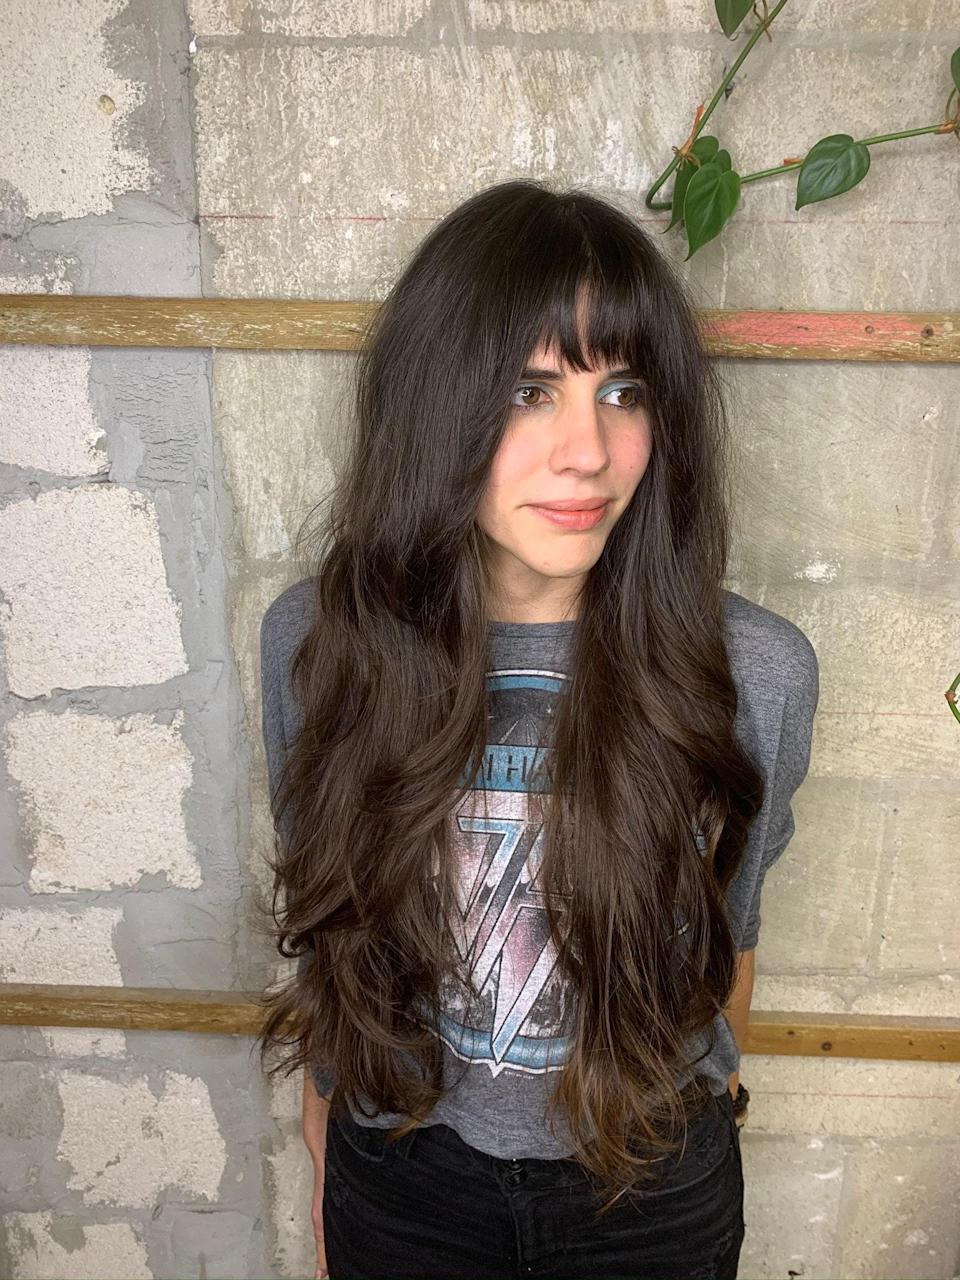 """The shag is still going strong in Miami, but stylists are giving it an update with long layers. """"This cut is awesome for any length, hair texture, and face shape,"""" says Rossana Rojas, stylist at Miami's <a href=""""http://juniorandhatter.com/"""" rel=""""nofollow noopener"""" target=""""_blank"""" data-ylk=""""slk:Junior & Hatter"""" class=""""link rapid-noclick-resp"""">Junior & Hatter</a> Salon, adding that it's been her top requested cut for the past year due to its effortless look."""